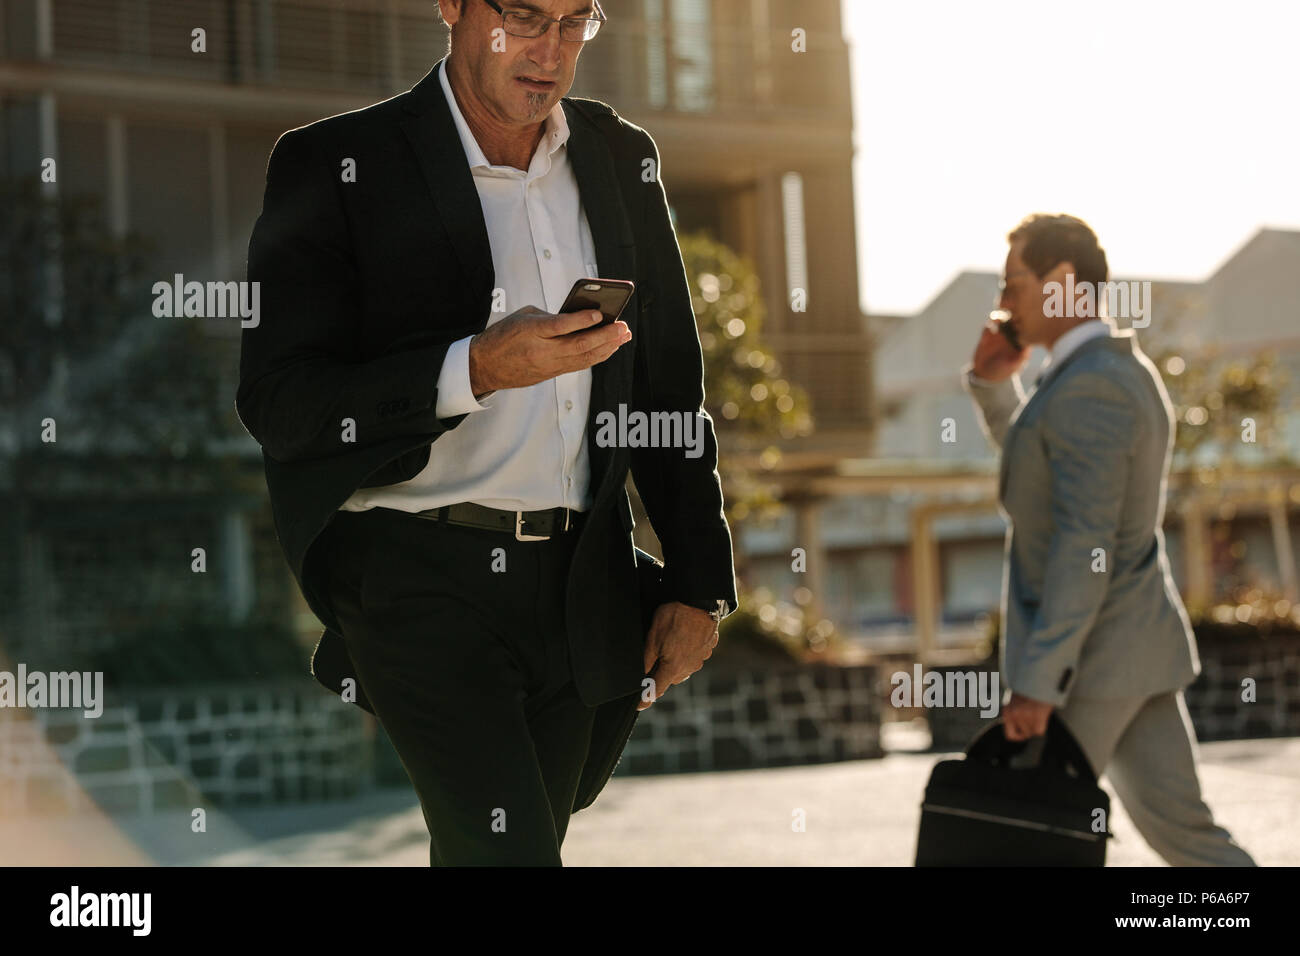 Businessman looking at his mobile phone while walking on street to office. Busy office going people carrying office bag and using mobile phone. - Stock Image